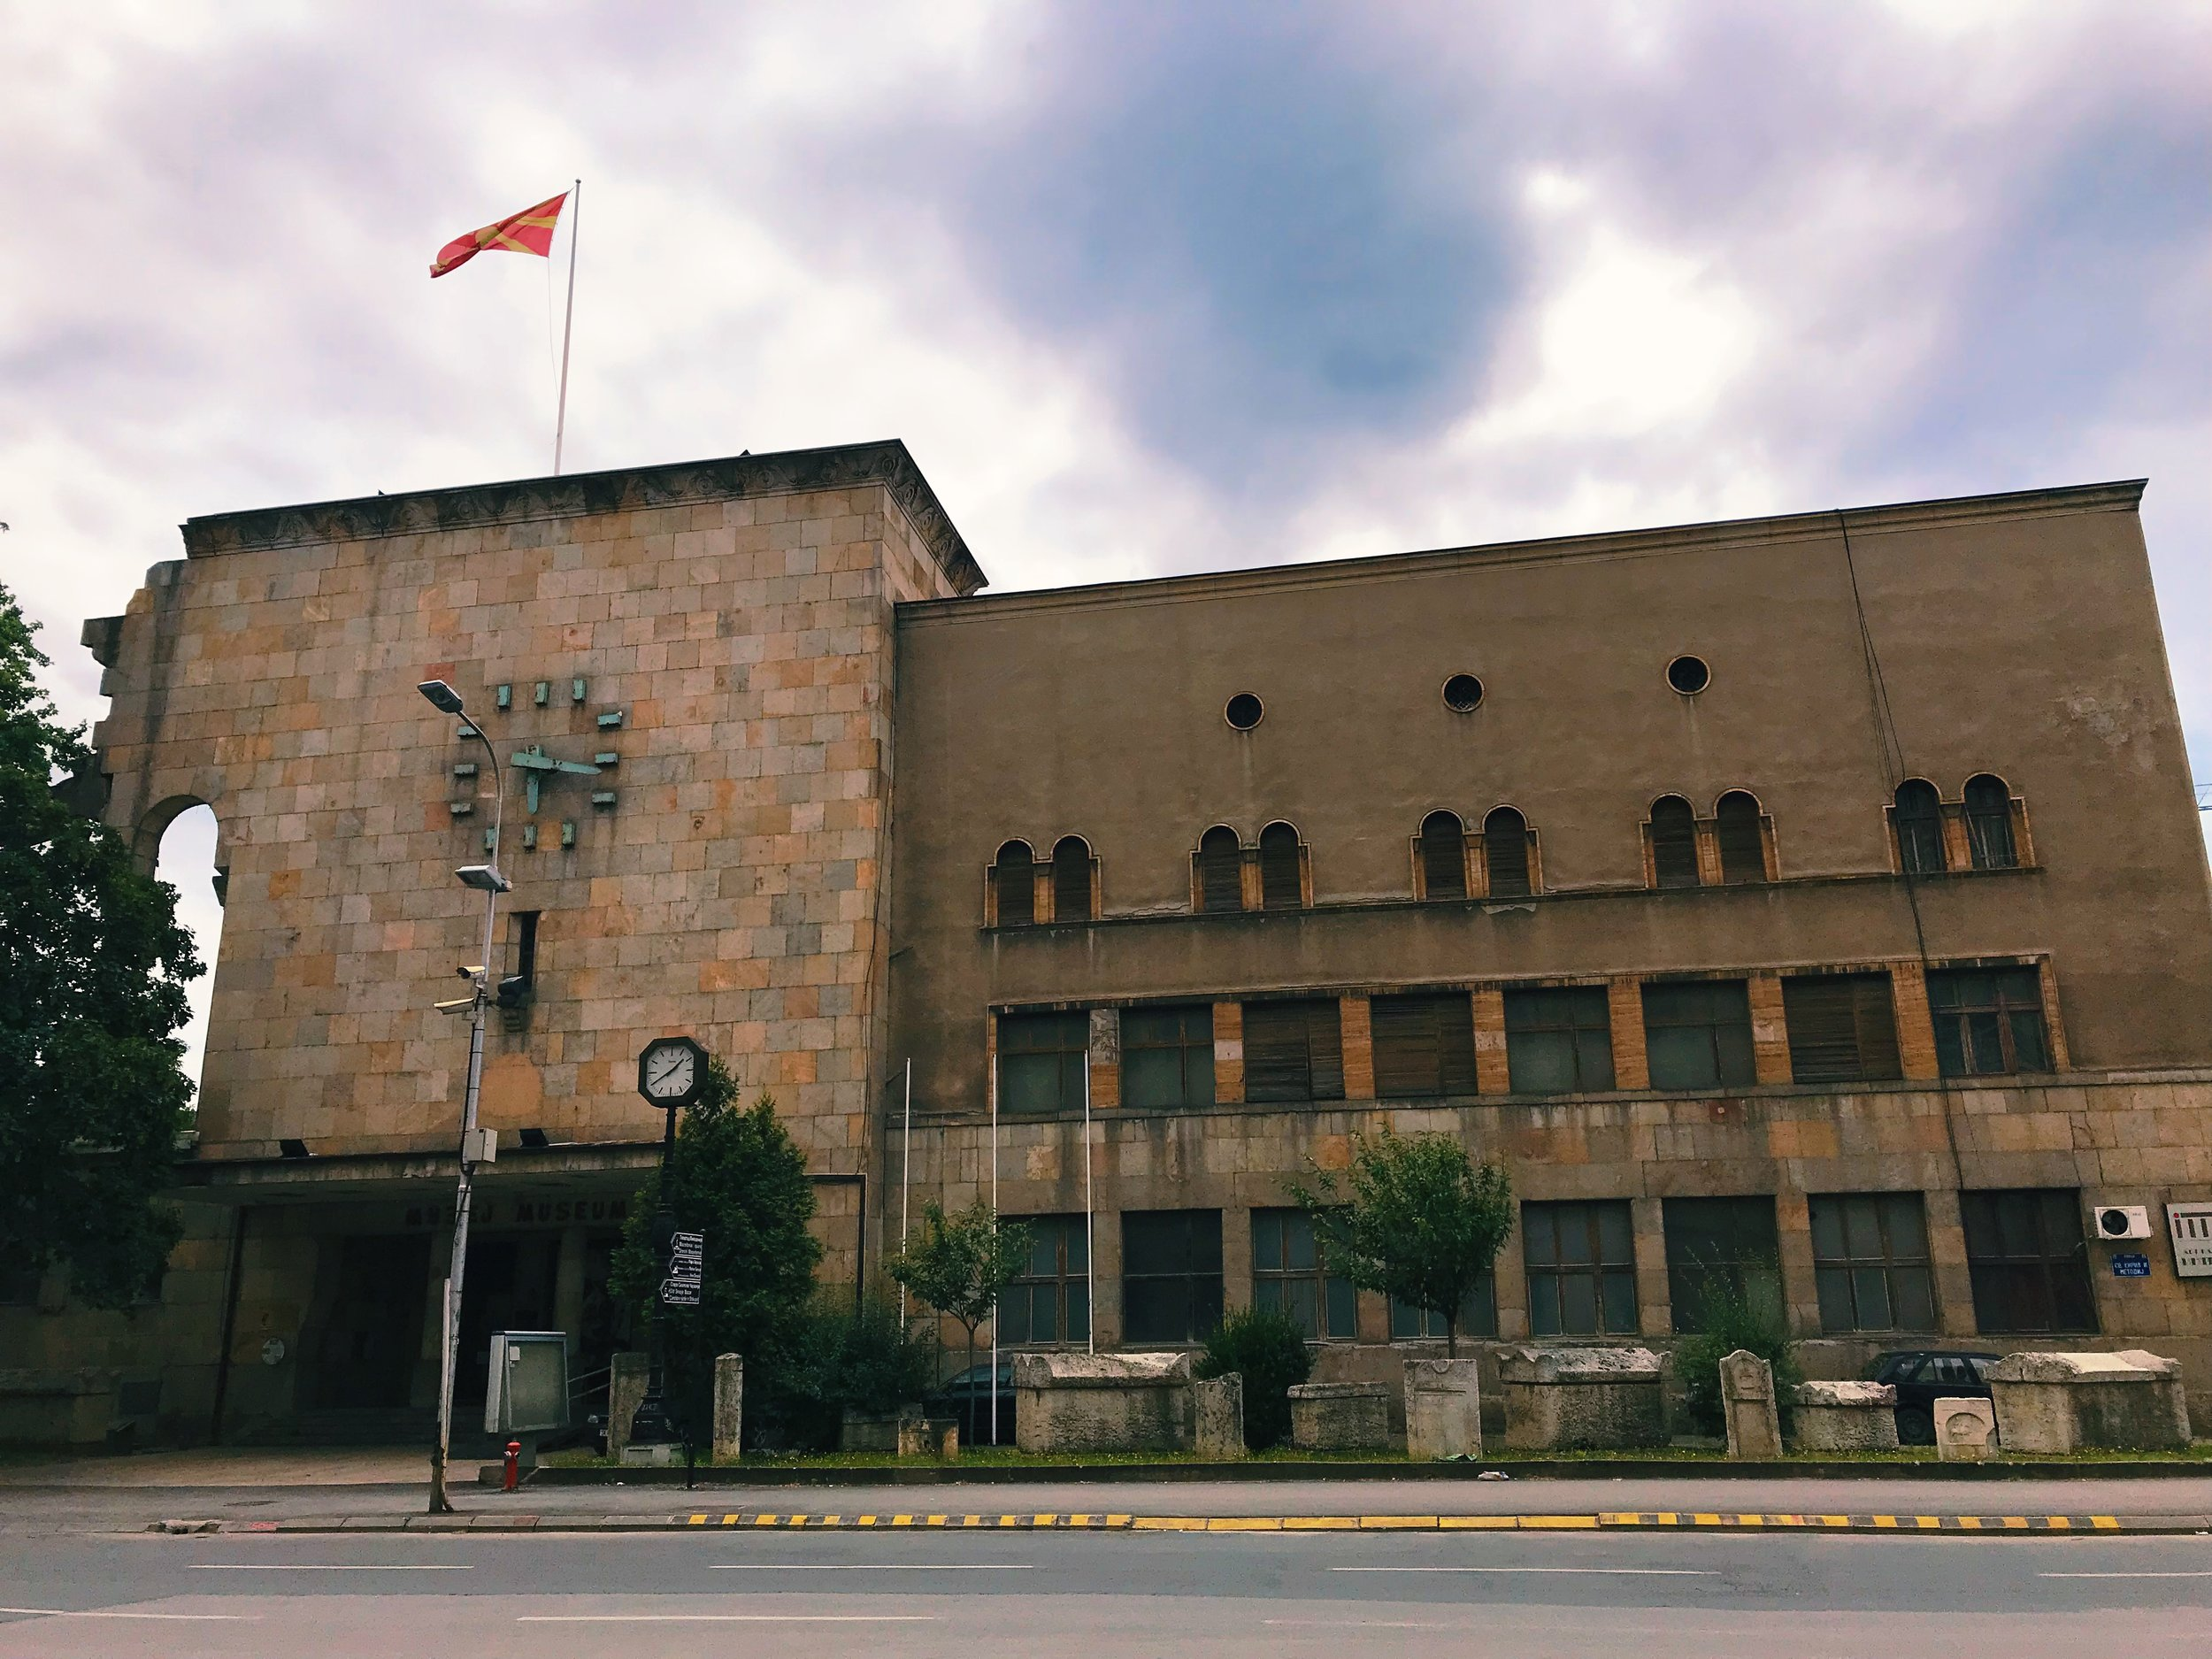 The old train station  is now the Museum of the City of Skopje. It stopped operating as a train station after the 1963 earthquake and its clock forever marks the time when that natural disaster hit.